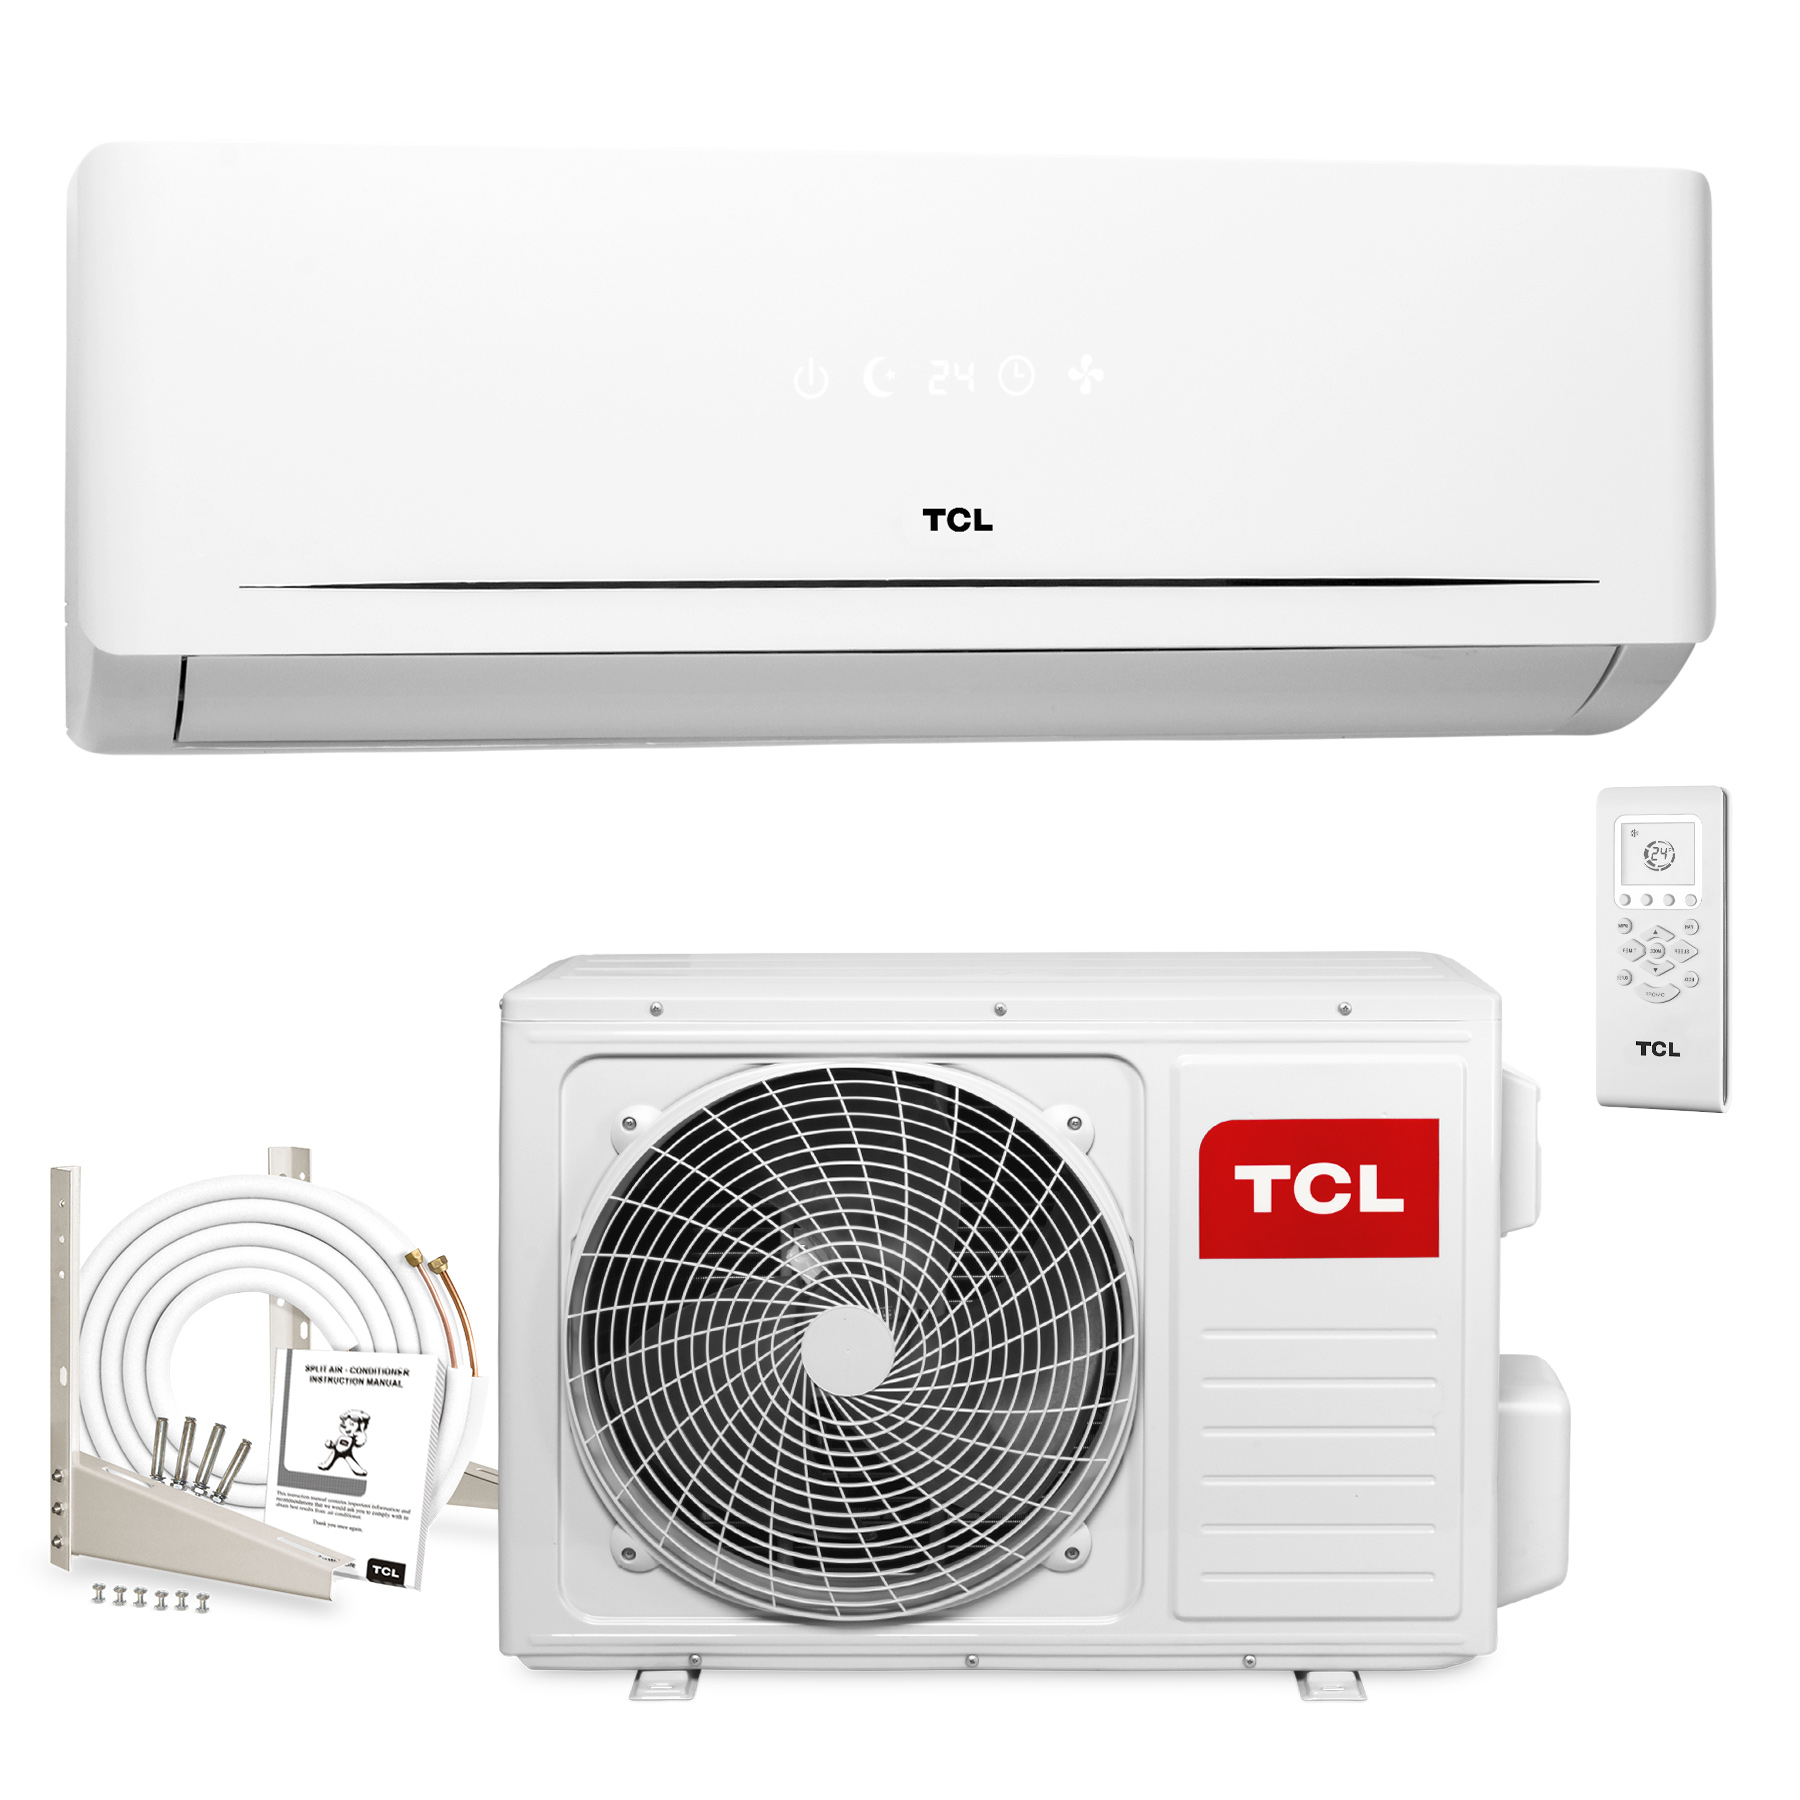 tcl inverter split klimaanlage 12000 btu 3 5kw klima klimager t modell ka ebay. Black Bedroom Furniture Sets. Home Design Ideas